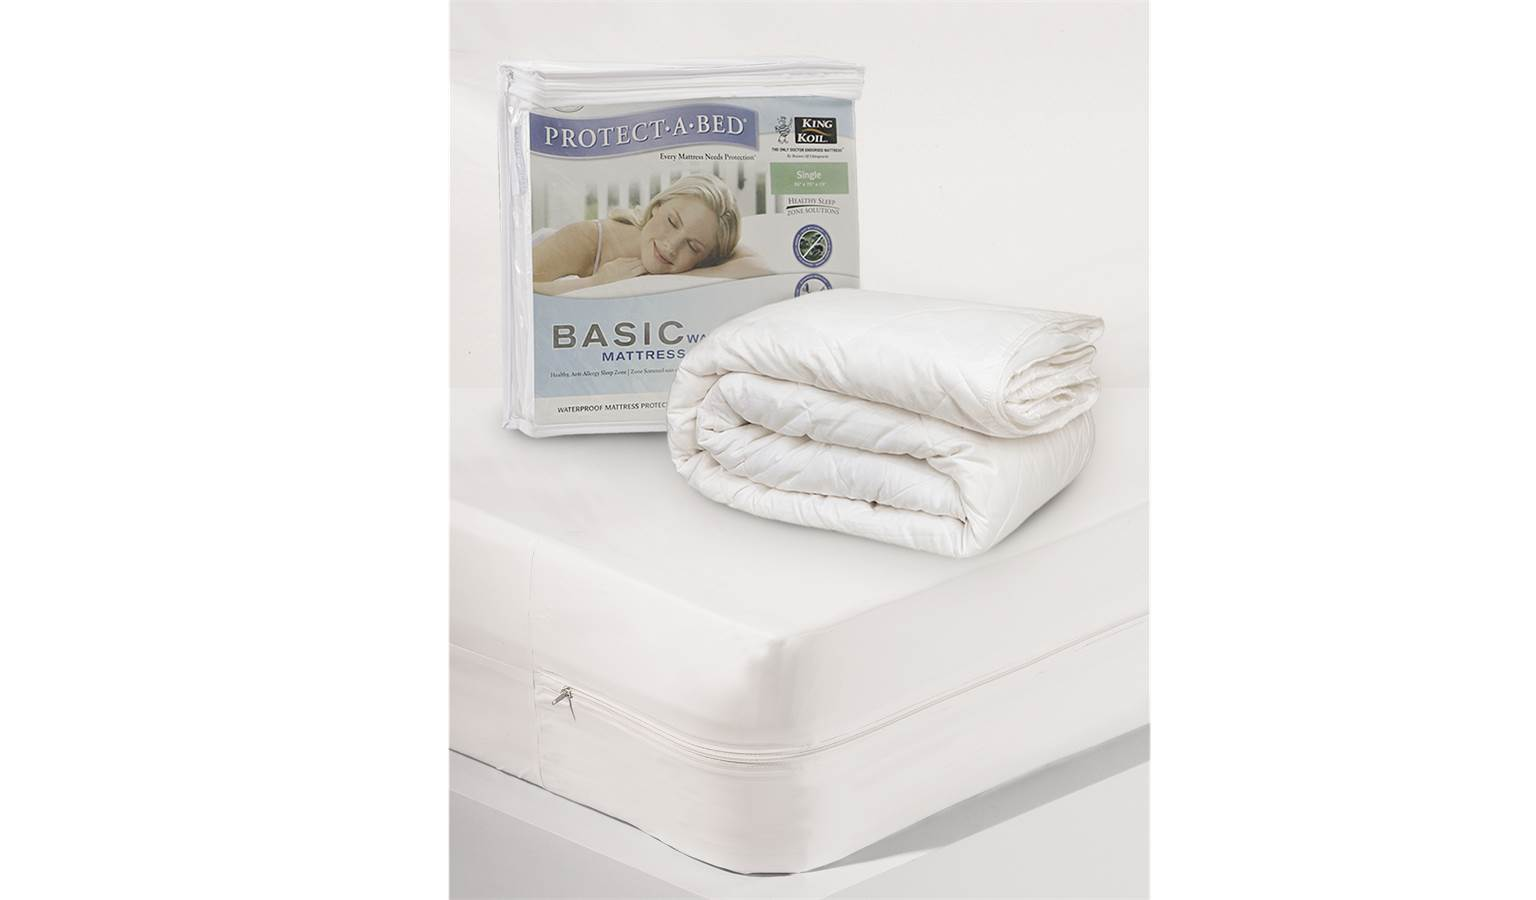 king koil protect a bed basic mattress protector queen size